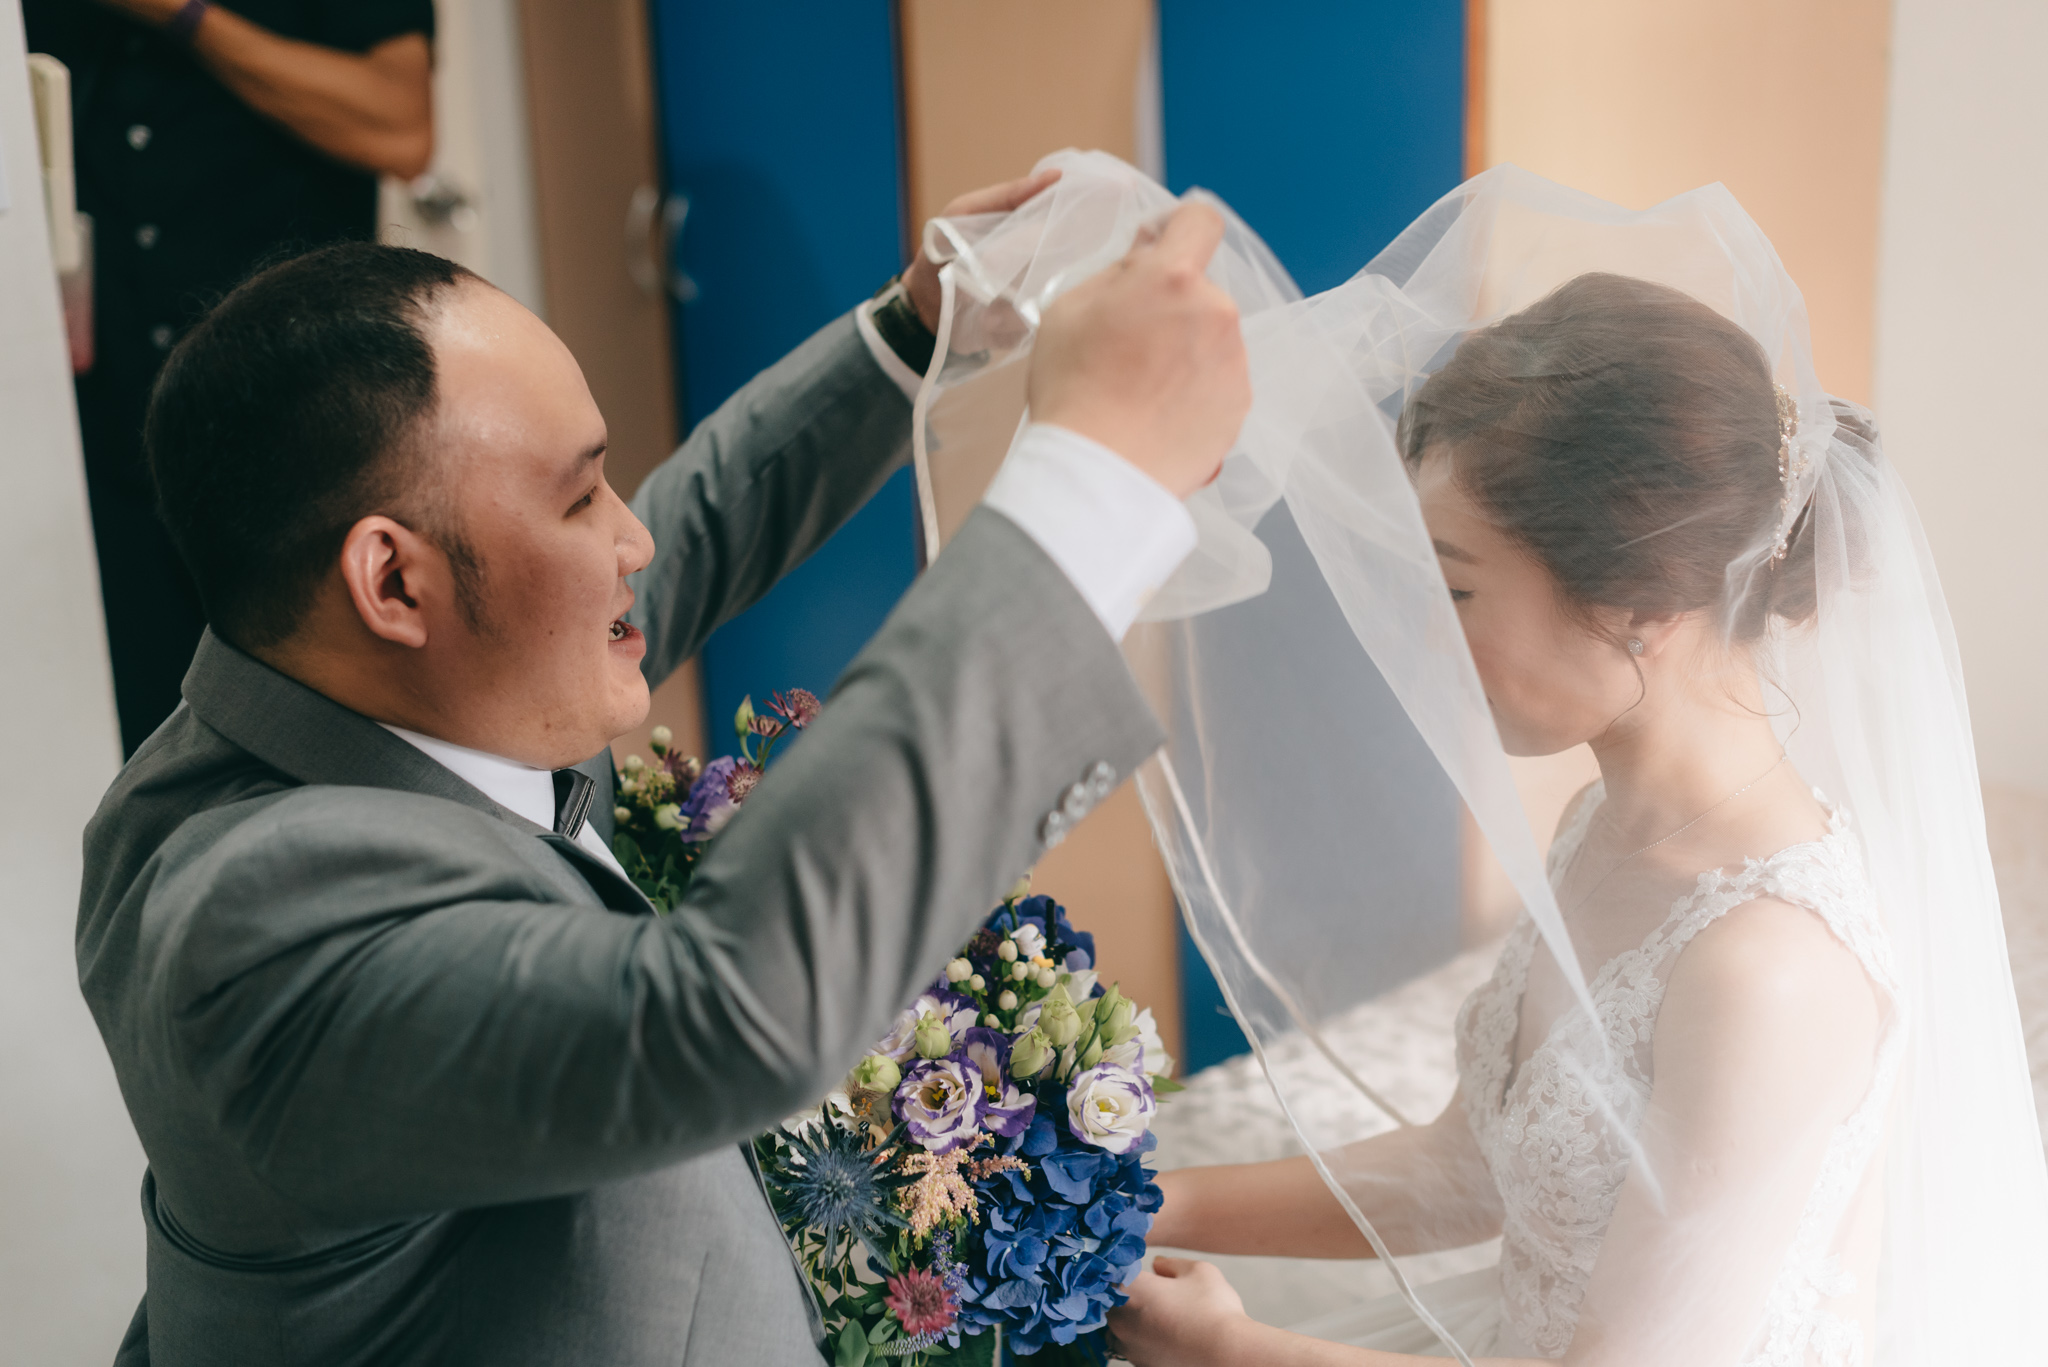 Eunice & Winshire Wedding Day Highlights (resized for sharing) - 063.jpg